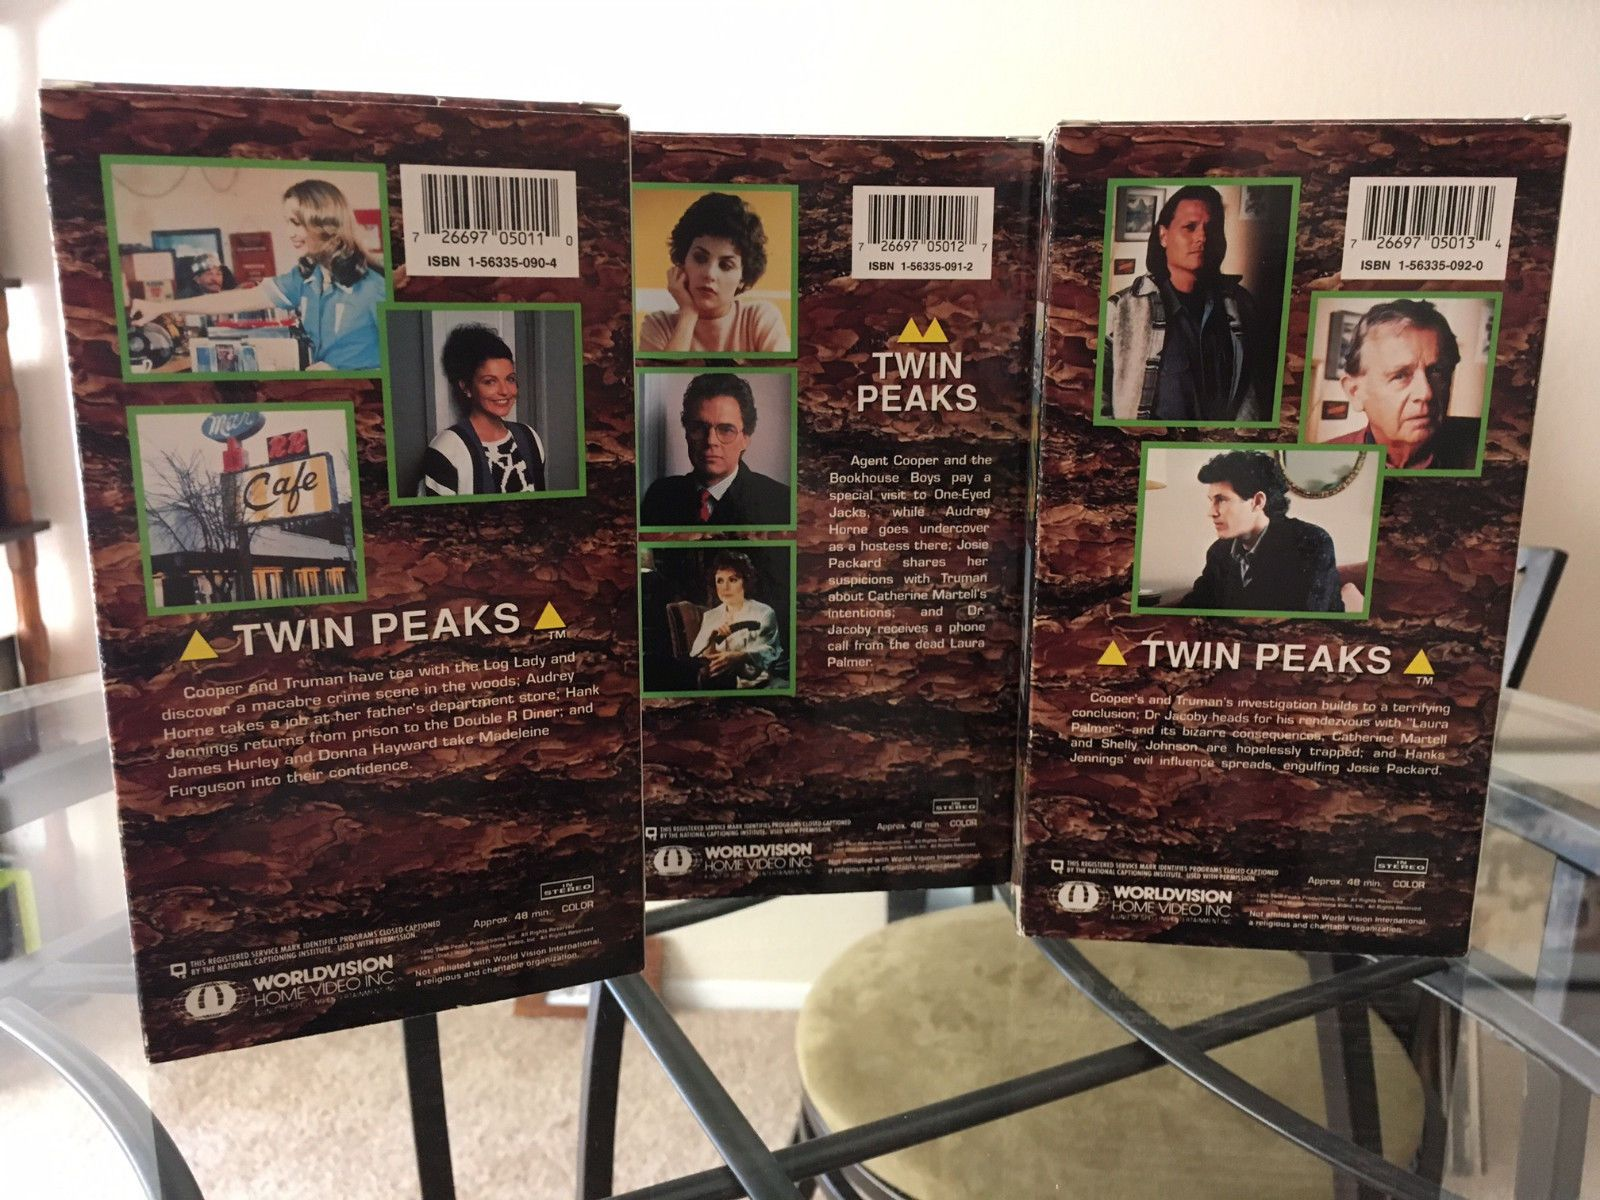 TWIN PEAKS VHS BOX SET Original Rare Used 1990 First Season Episodes 1-7. David LynchTwin Peaks